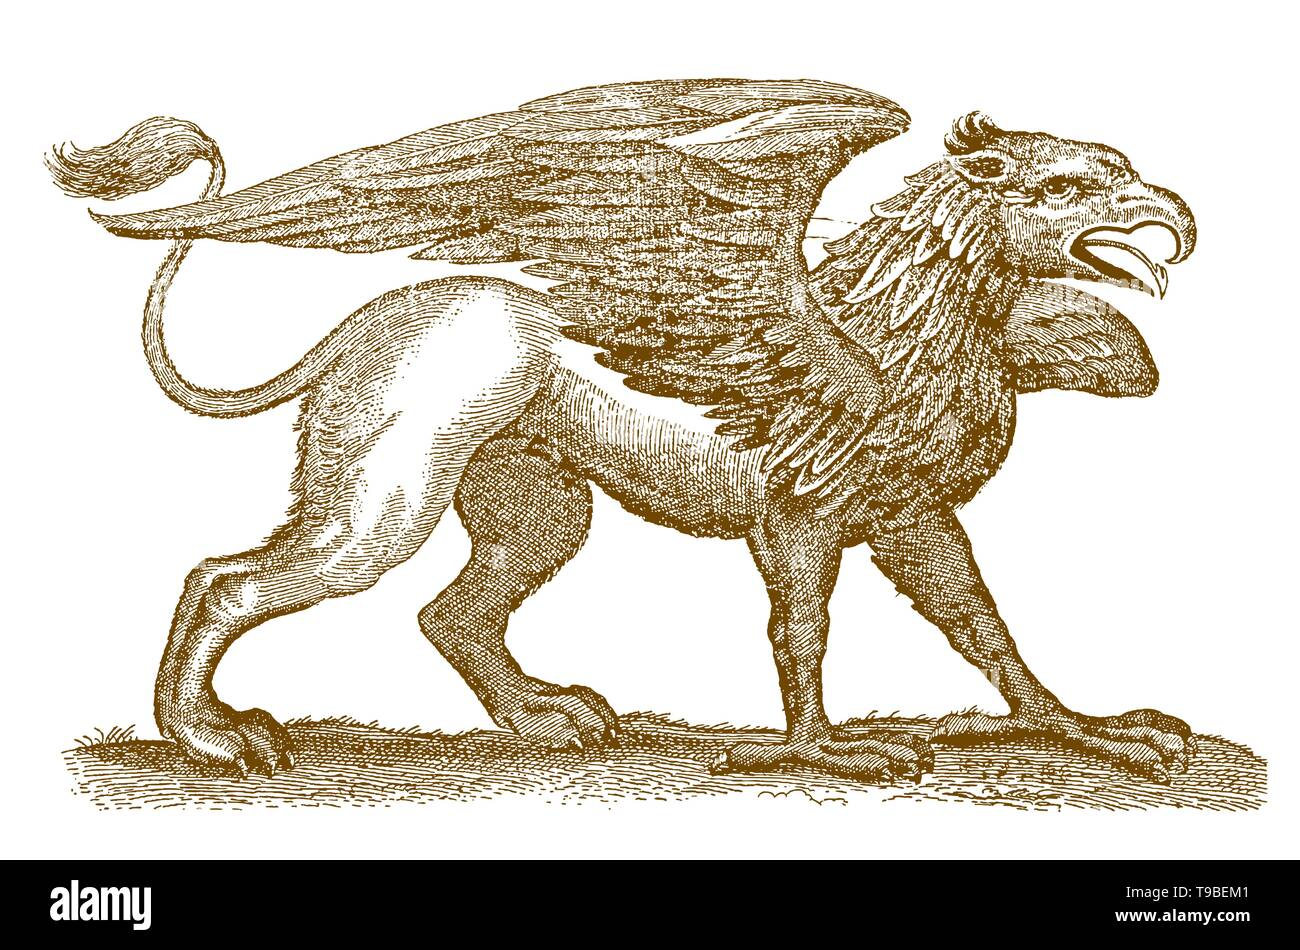 Mythical legendary hybrid creature griffin with the front of an eagle spreading its wings and the rear of a lion - Stock Image